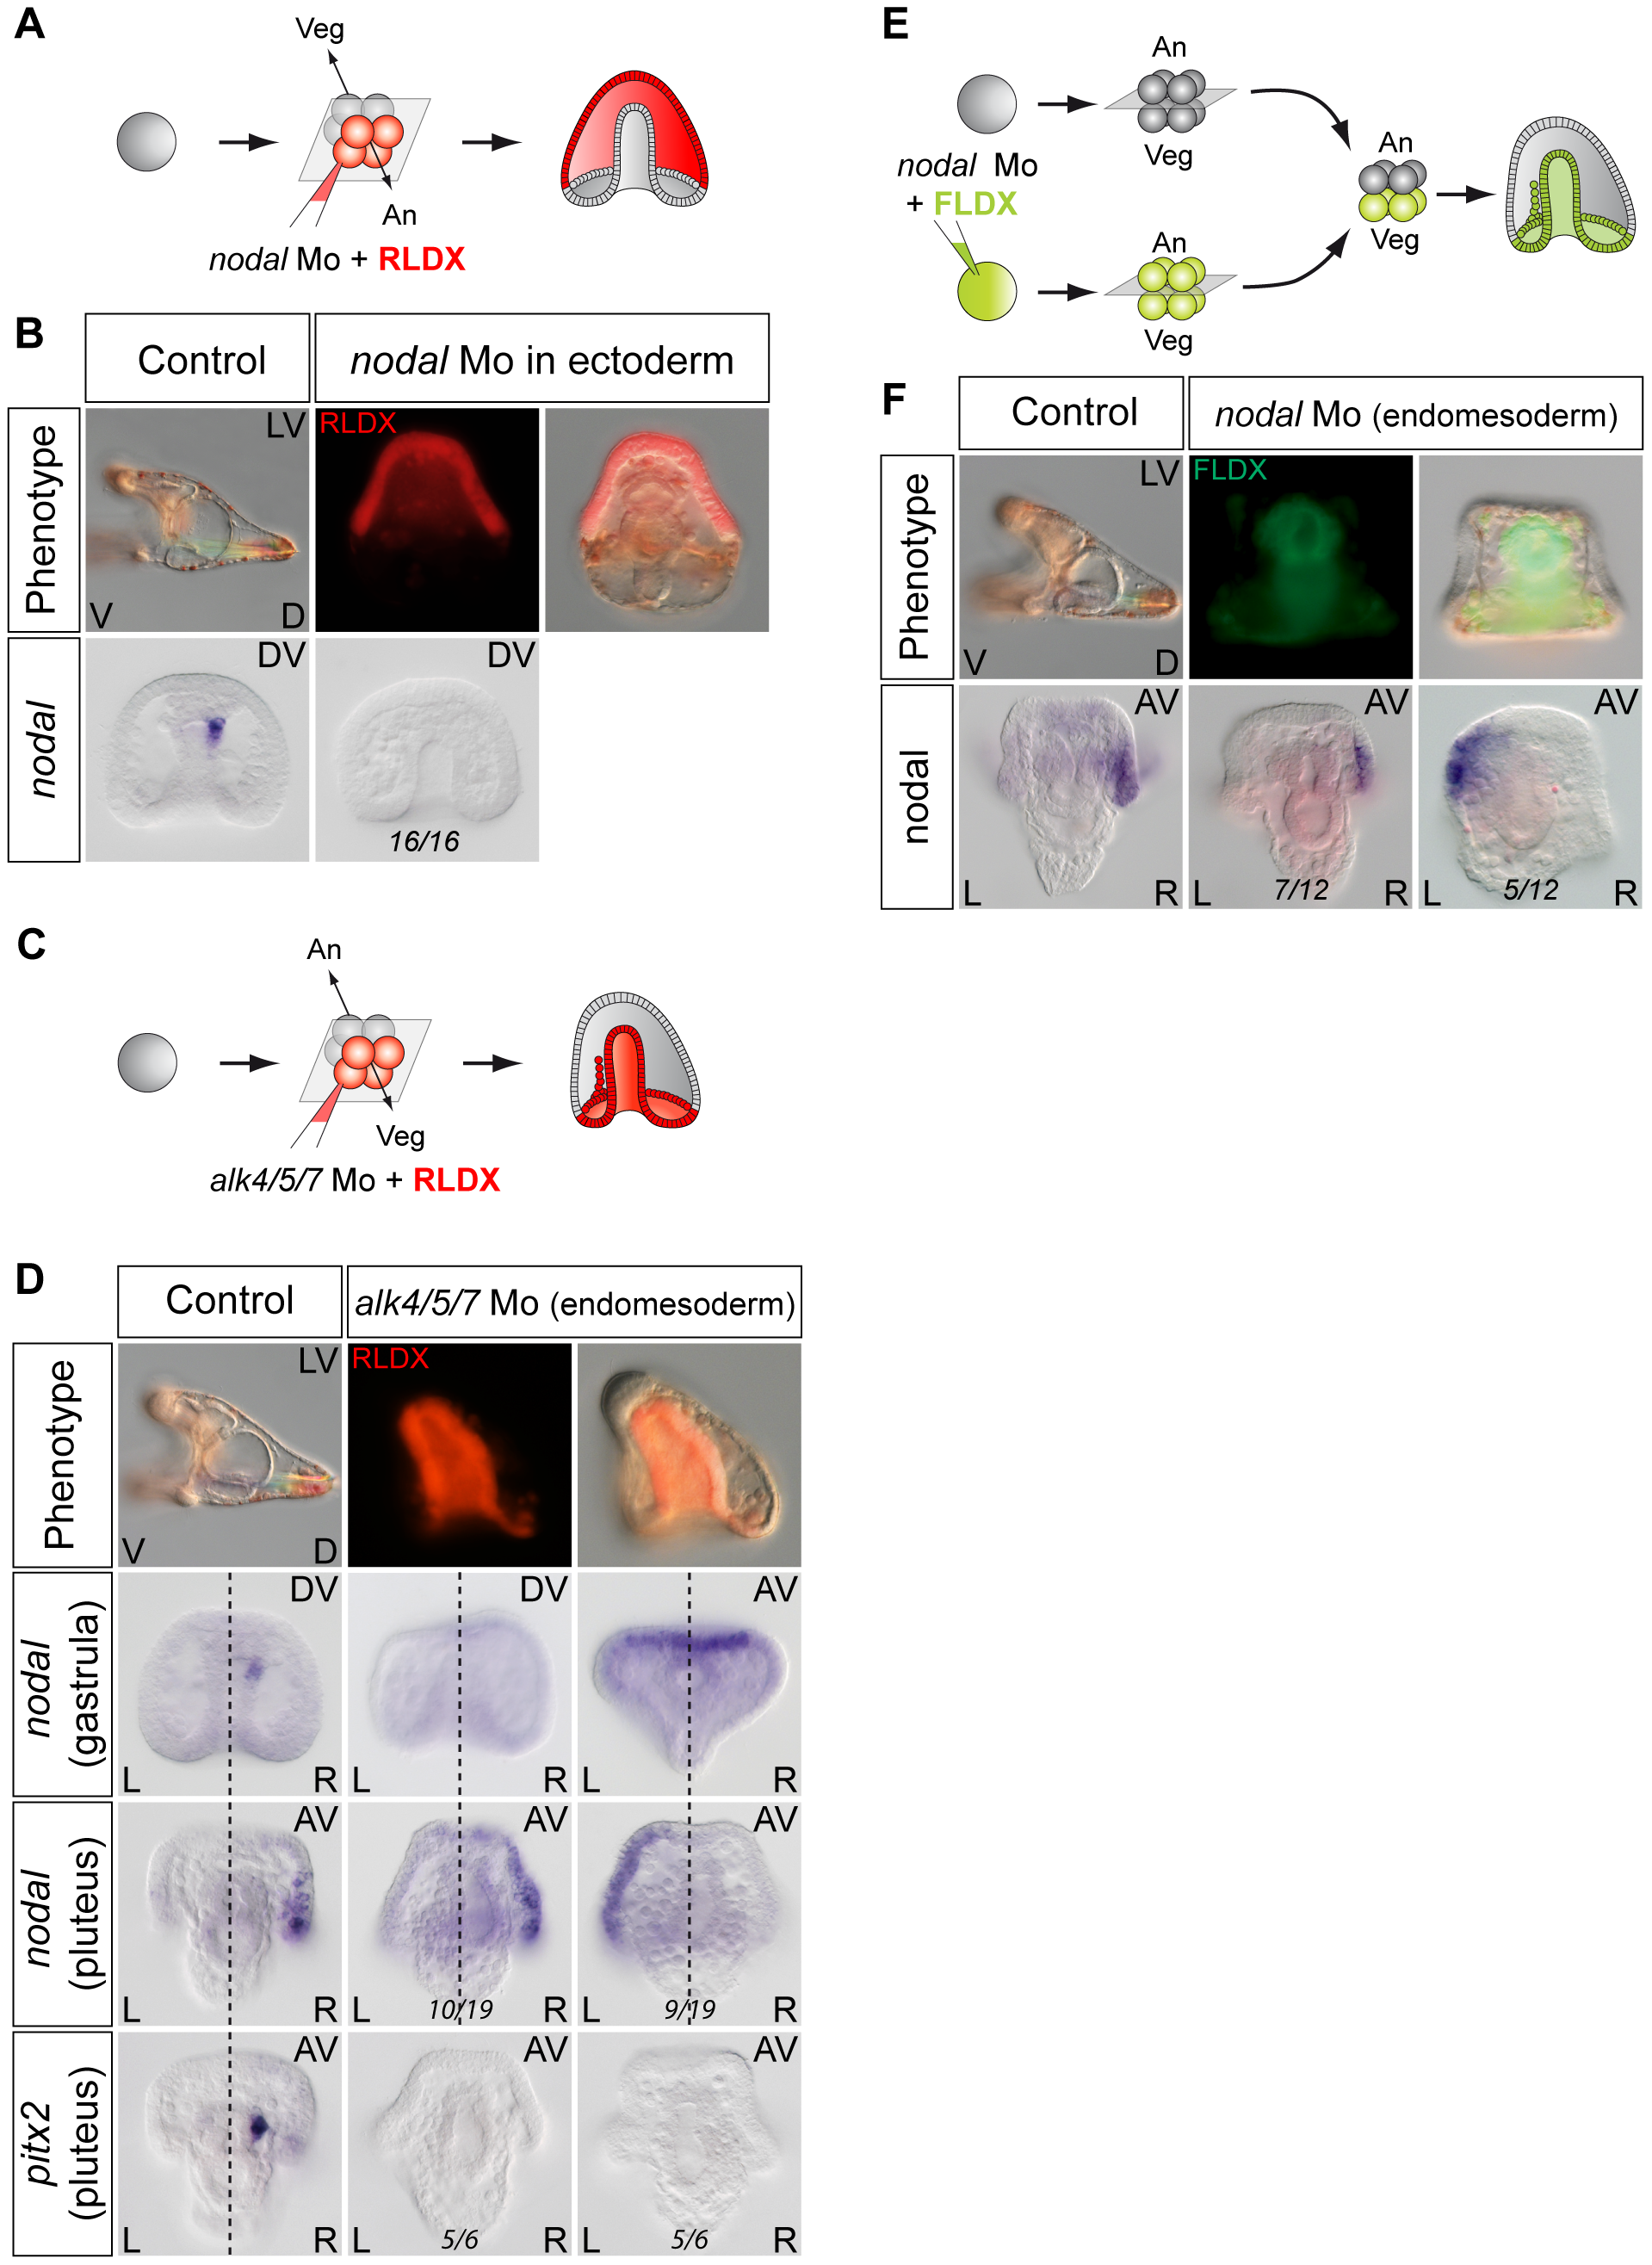 Establishment of left-right asymmetry requires reciprocal Nodal signaling between the ectoderm and endomesoderm.